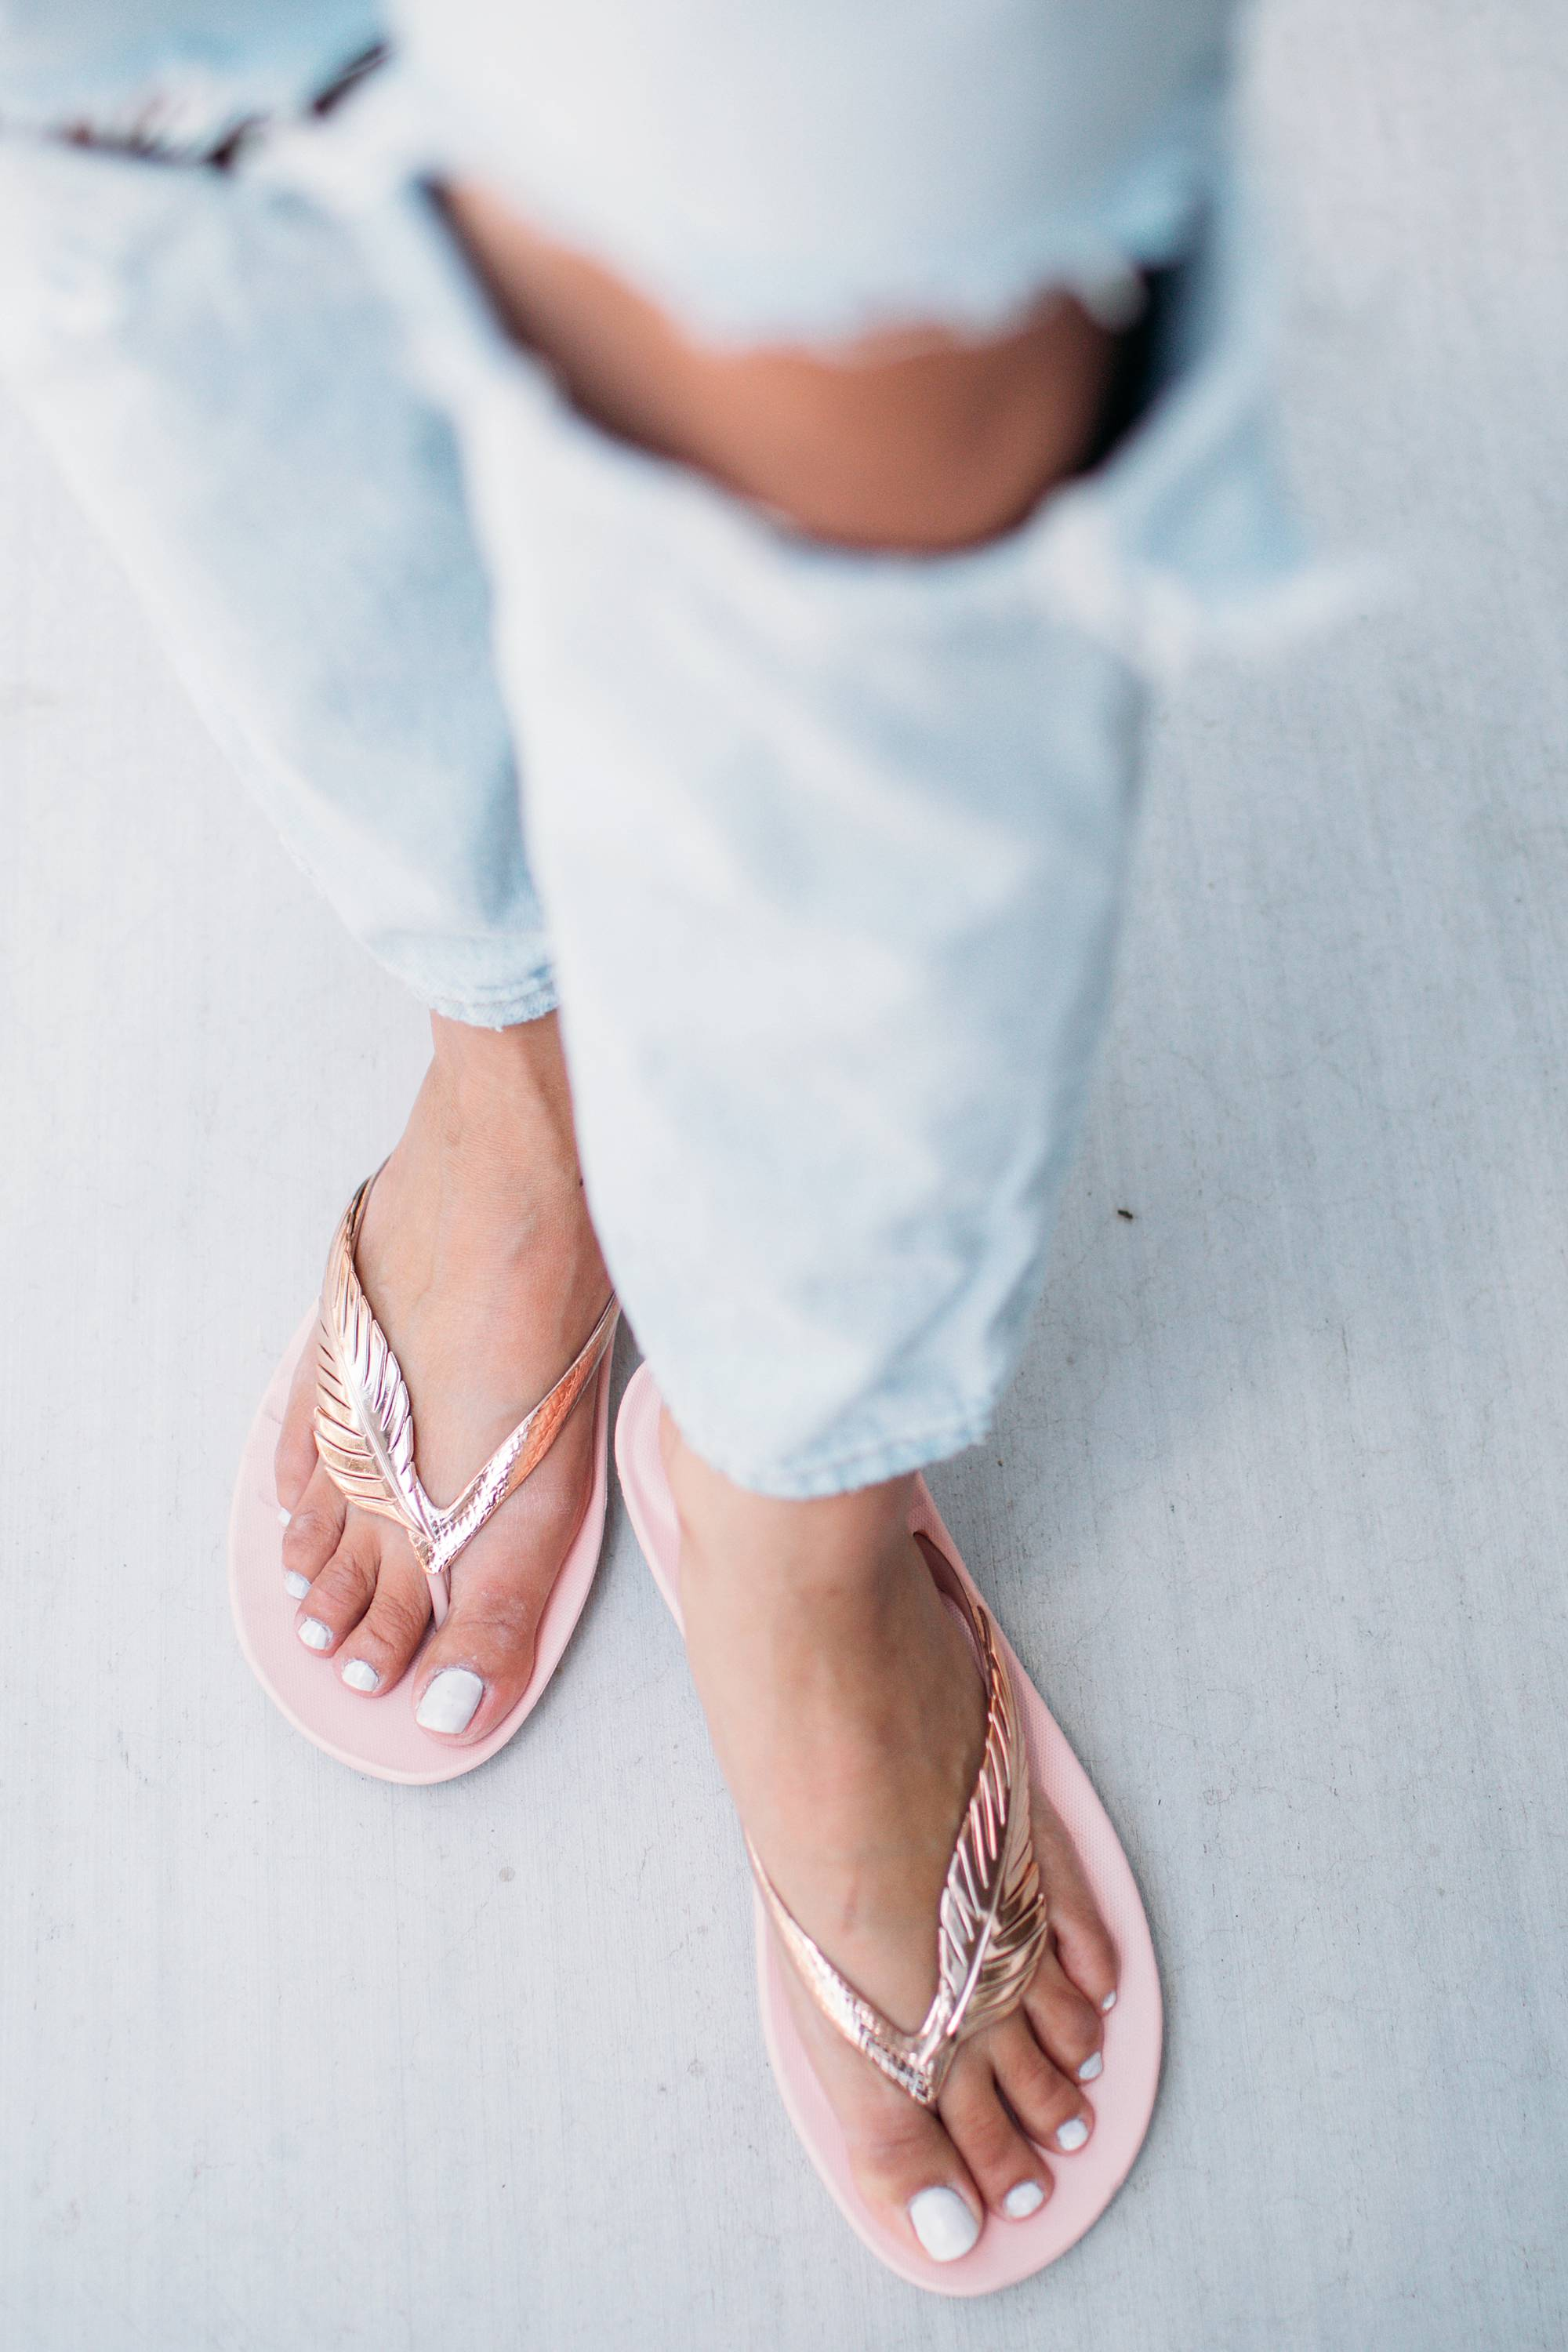 FitFlop Feather Ergonomic Flip-Flops so comfortable on phoenix lifestyle blogger Diana Elizabeth